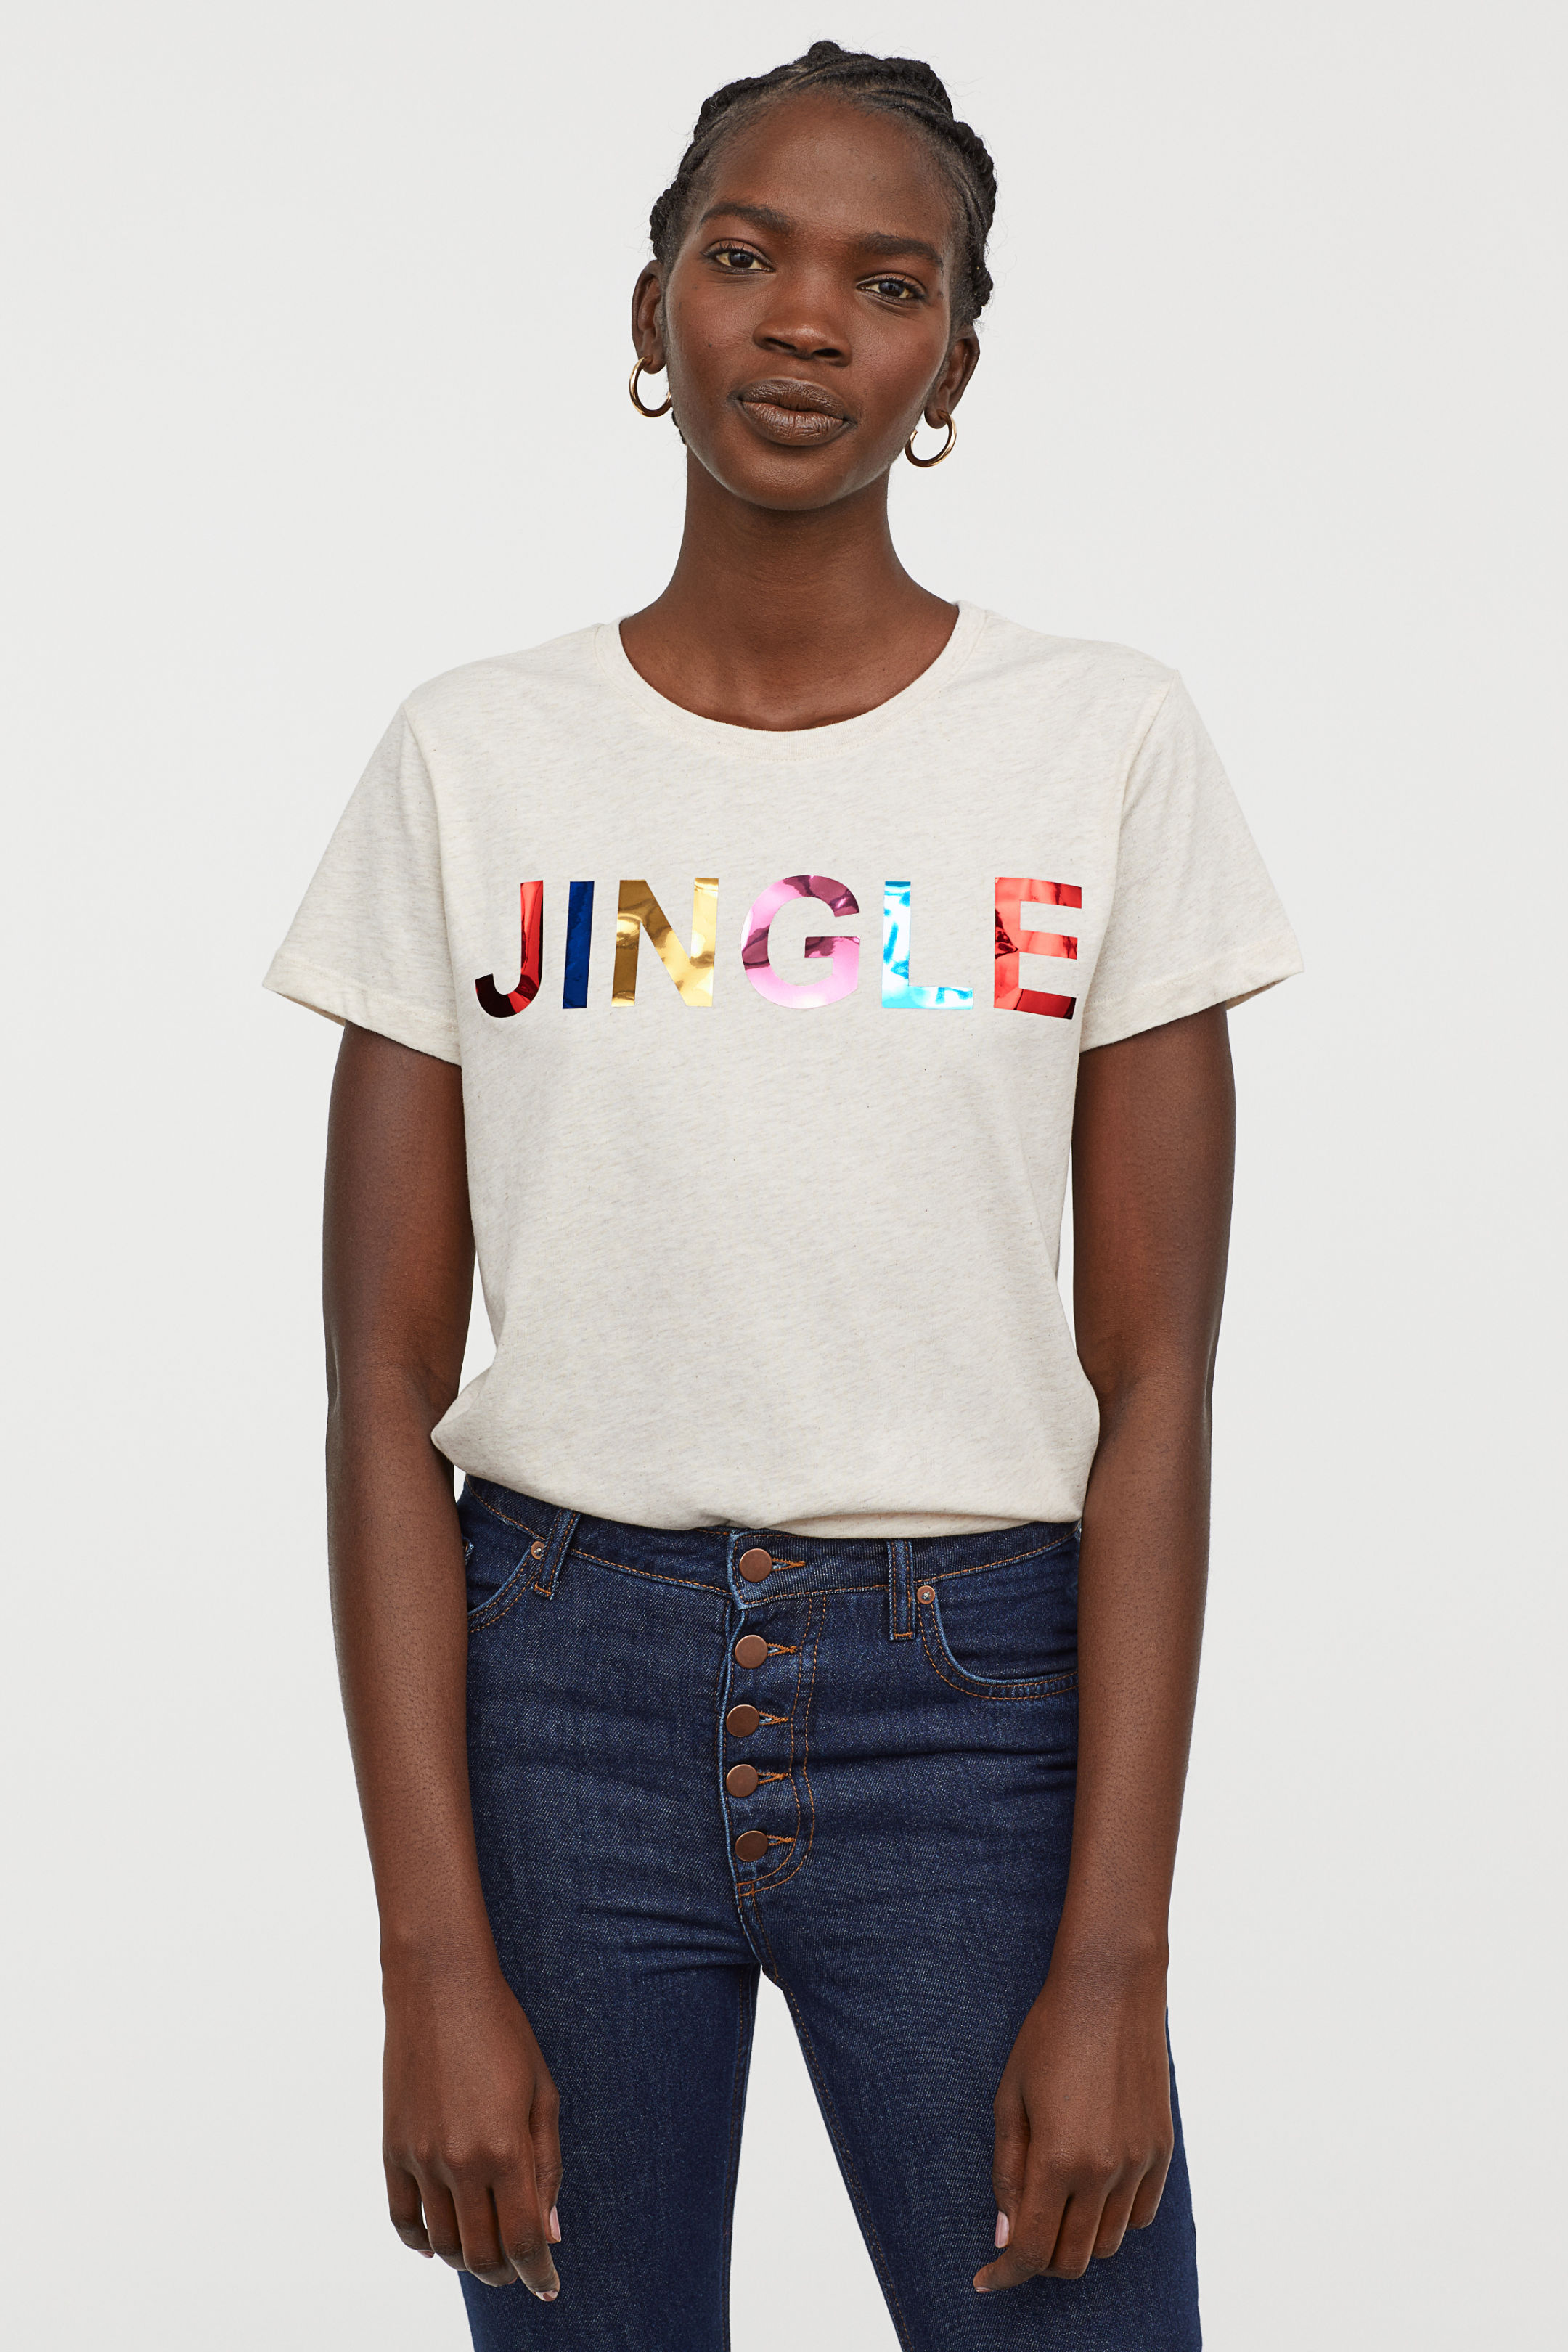 H&M Jingle t-shirt £8.99